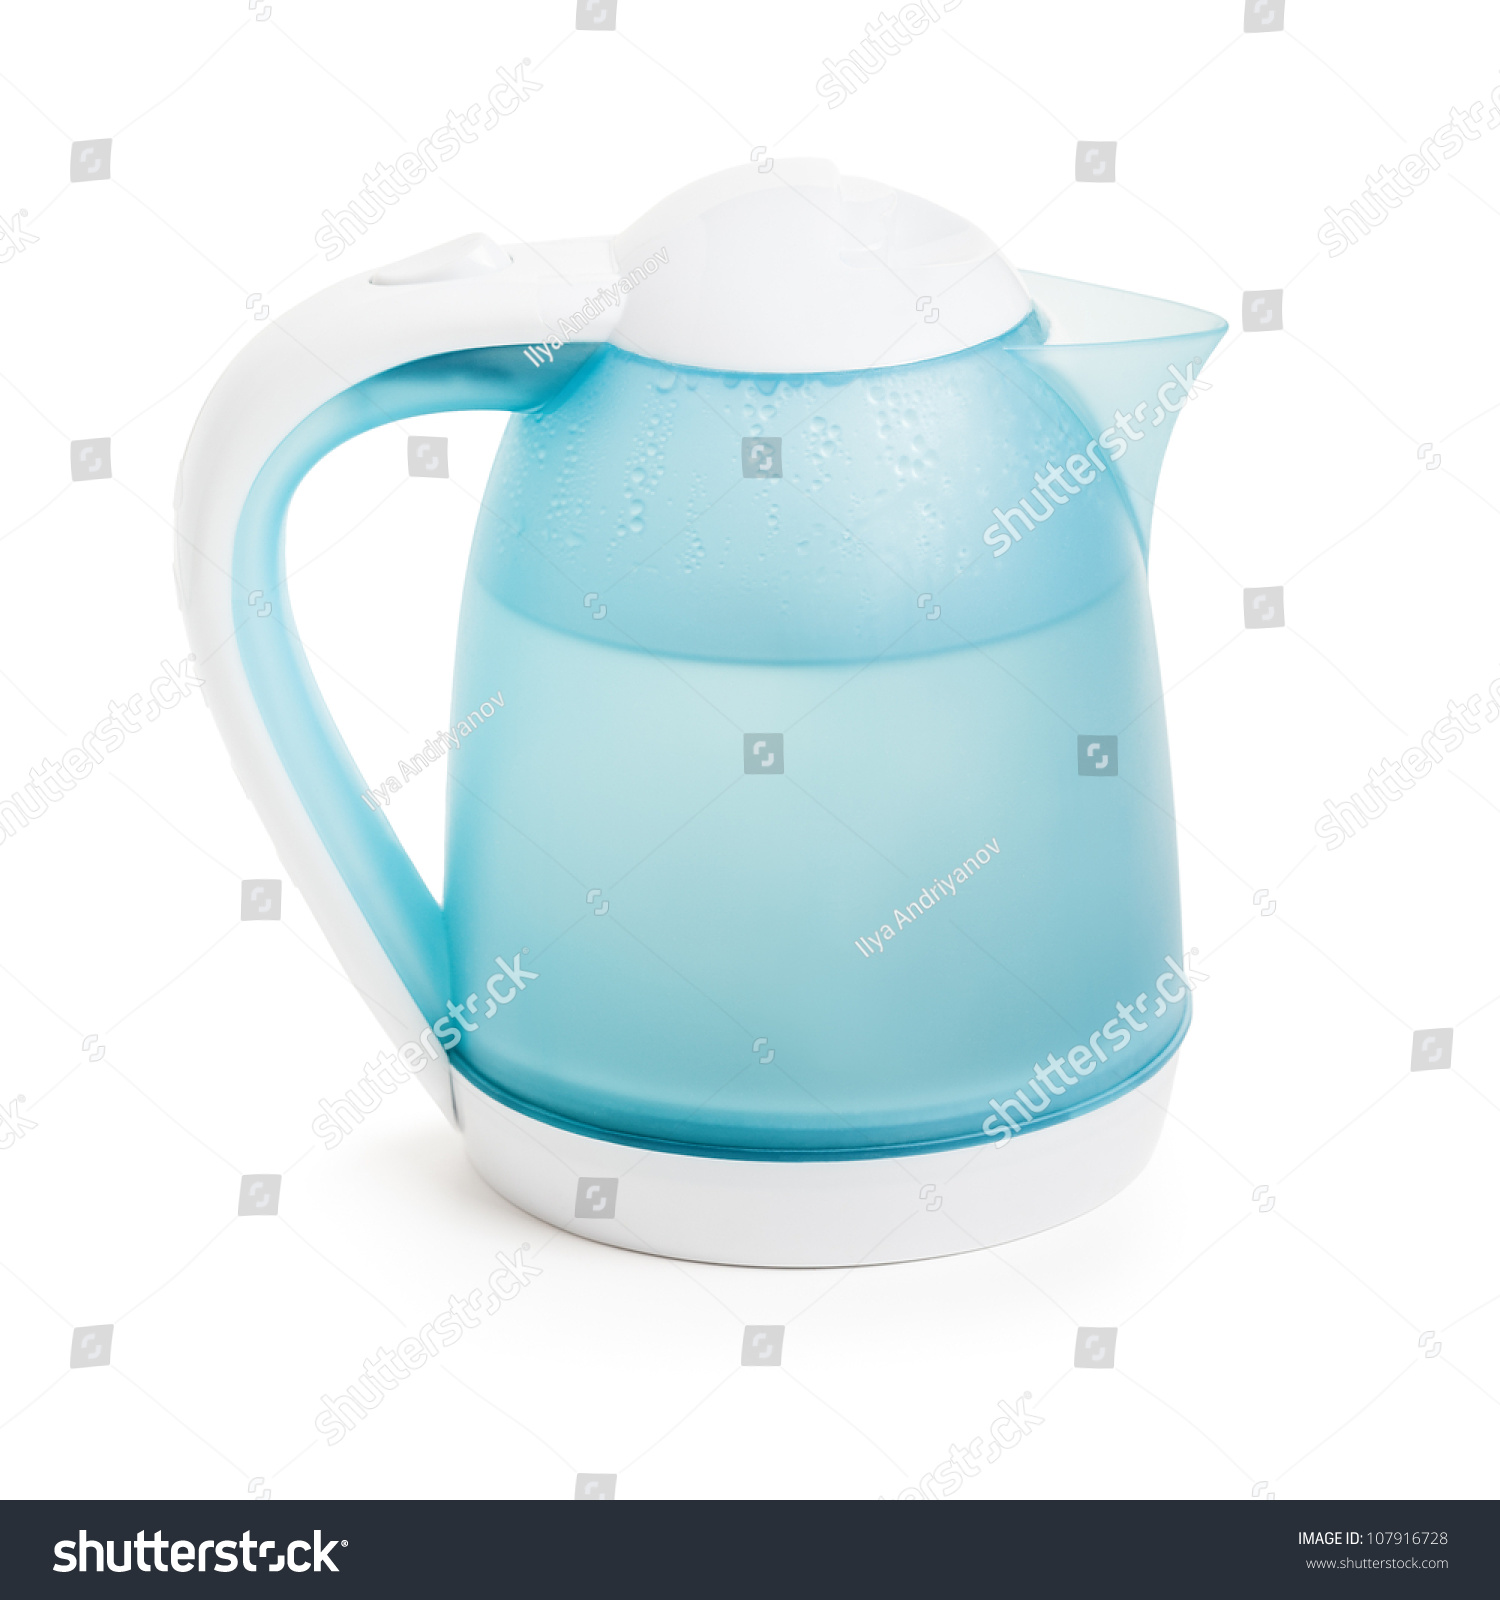 Hot Boiling Water Domestic Kitchen Electric Stock Photo 107916728 ...